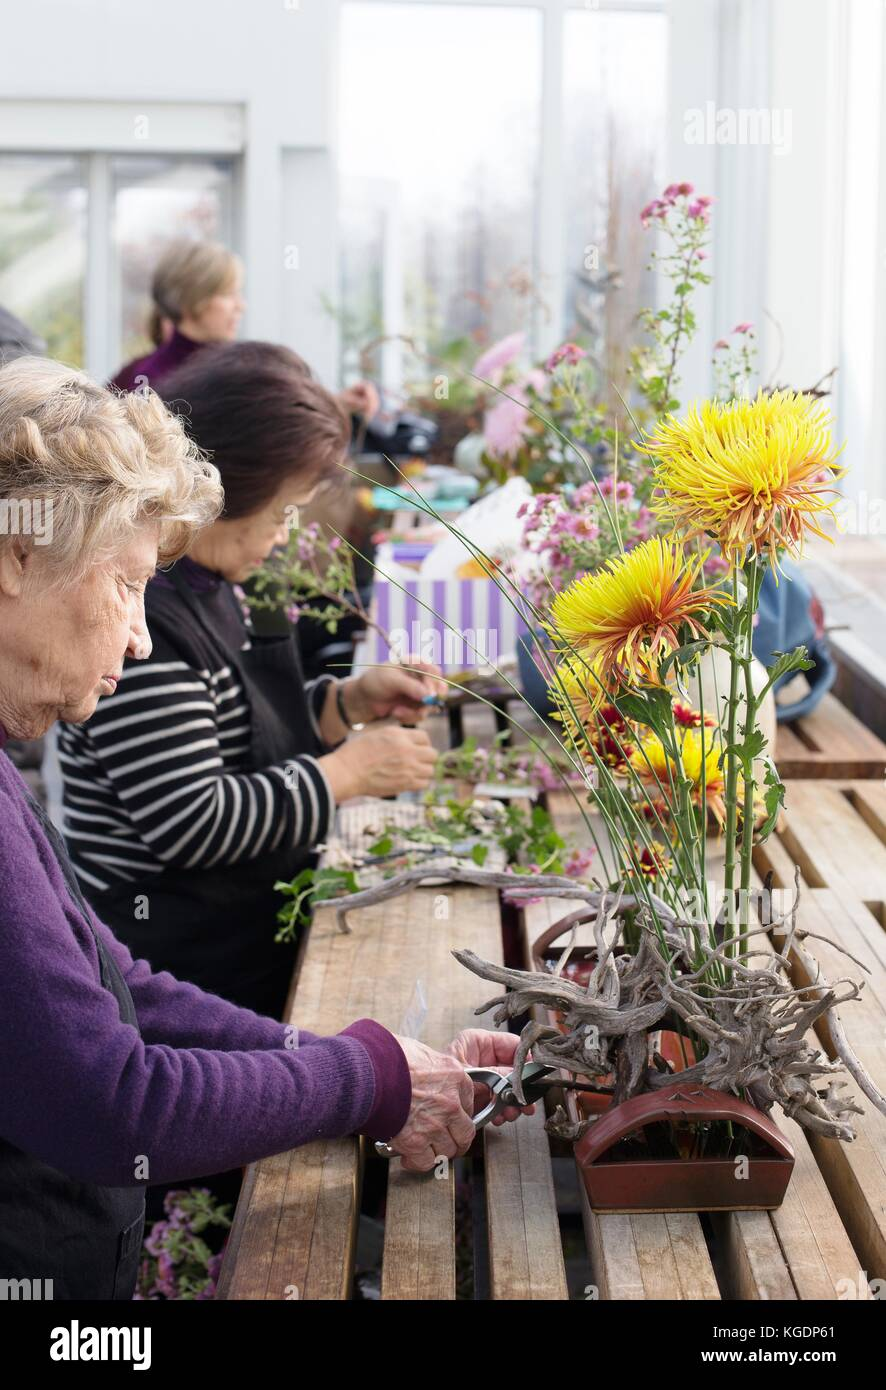 Ikebana artists arranging flowers at Como Conservatory in St. Paul, Minnesota, USA. - Stock Image